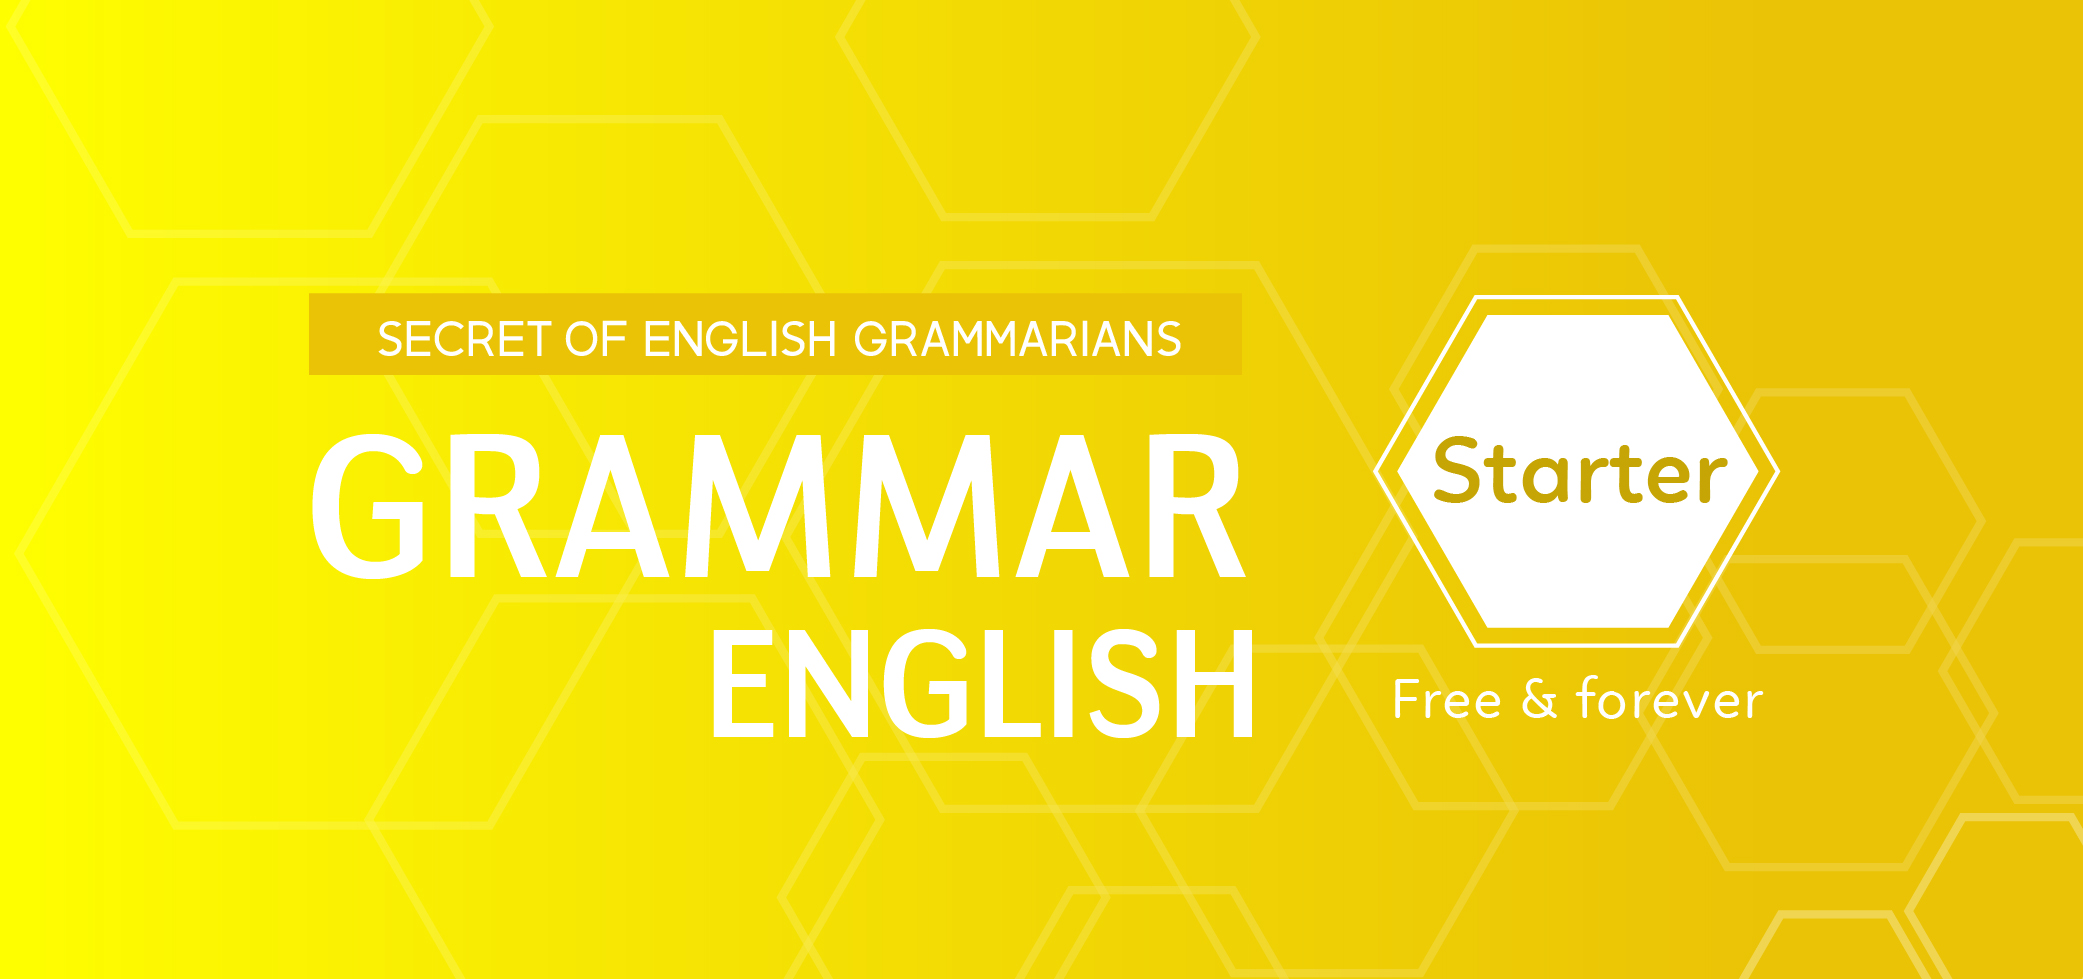 ENGLISH GRAMMAR FOR STARTER